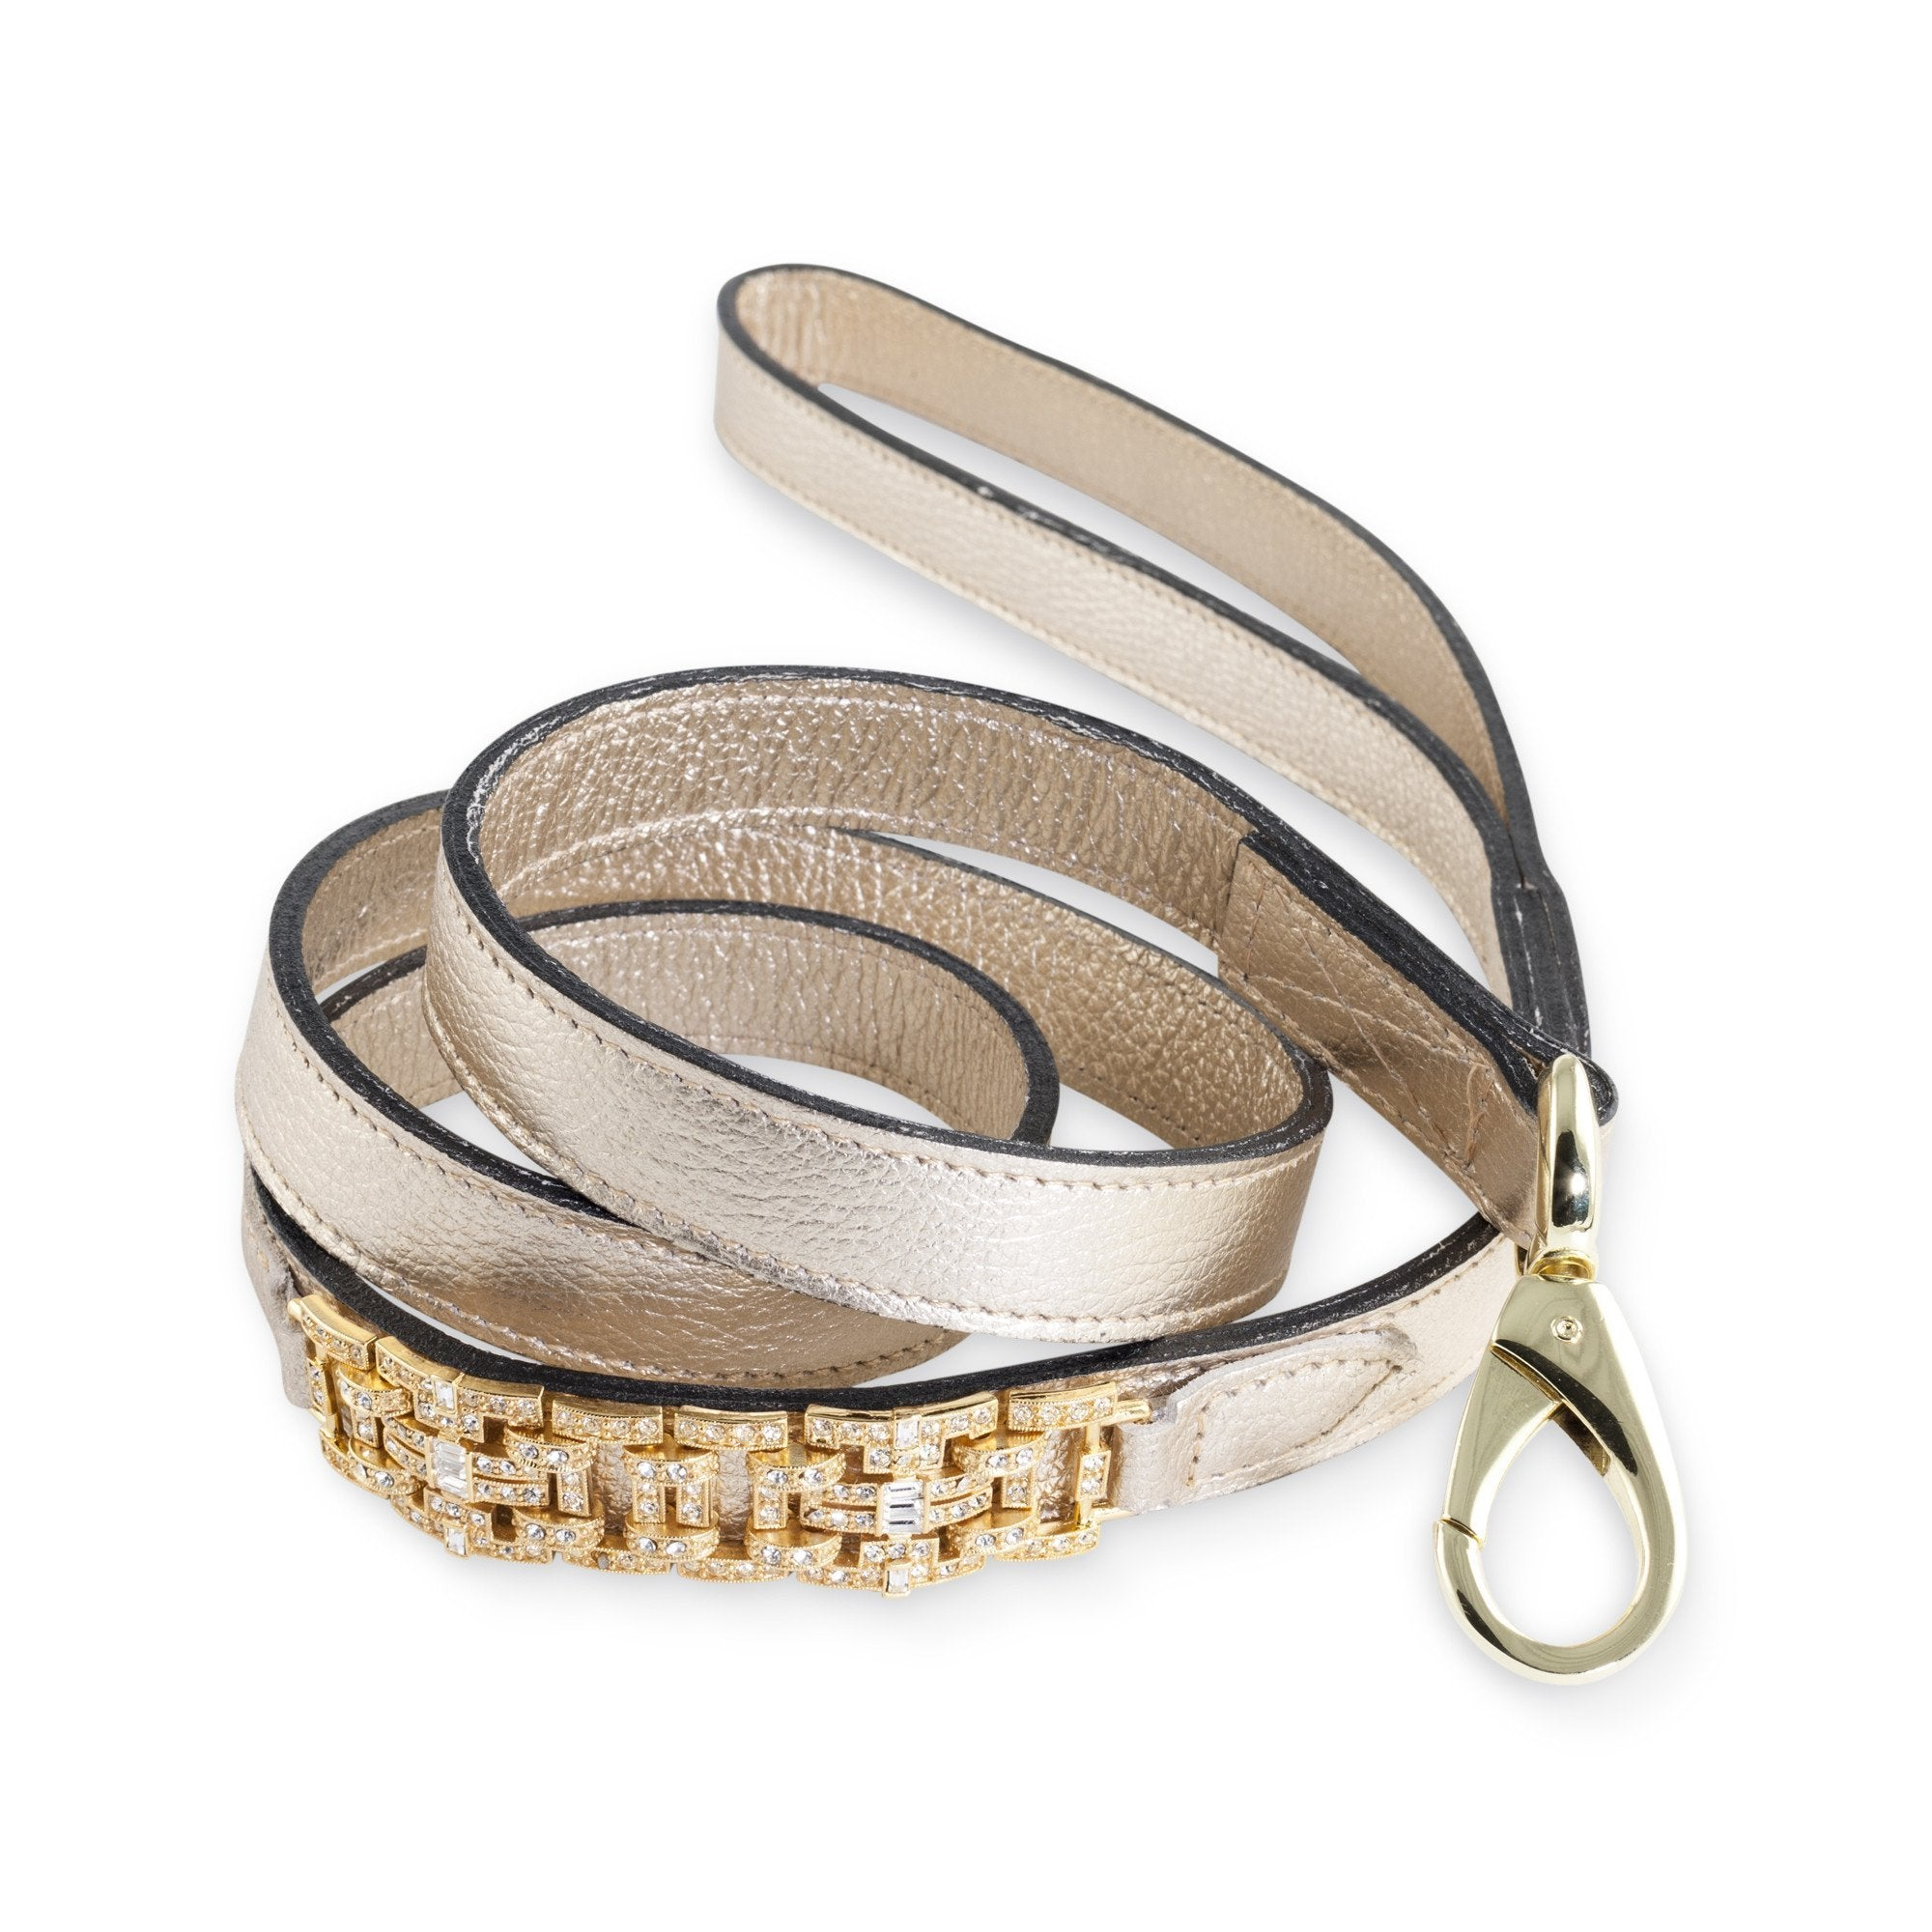 Hartman & Rose Haute Couture art deco leather lead in metallic gold